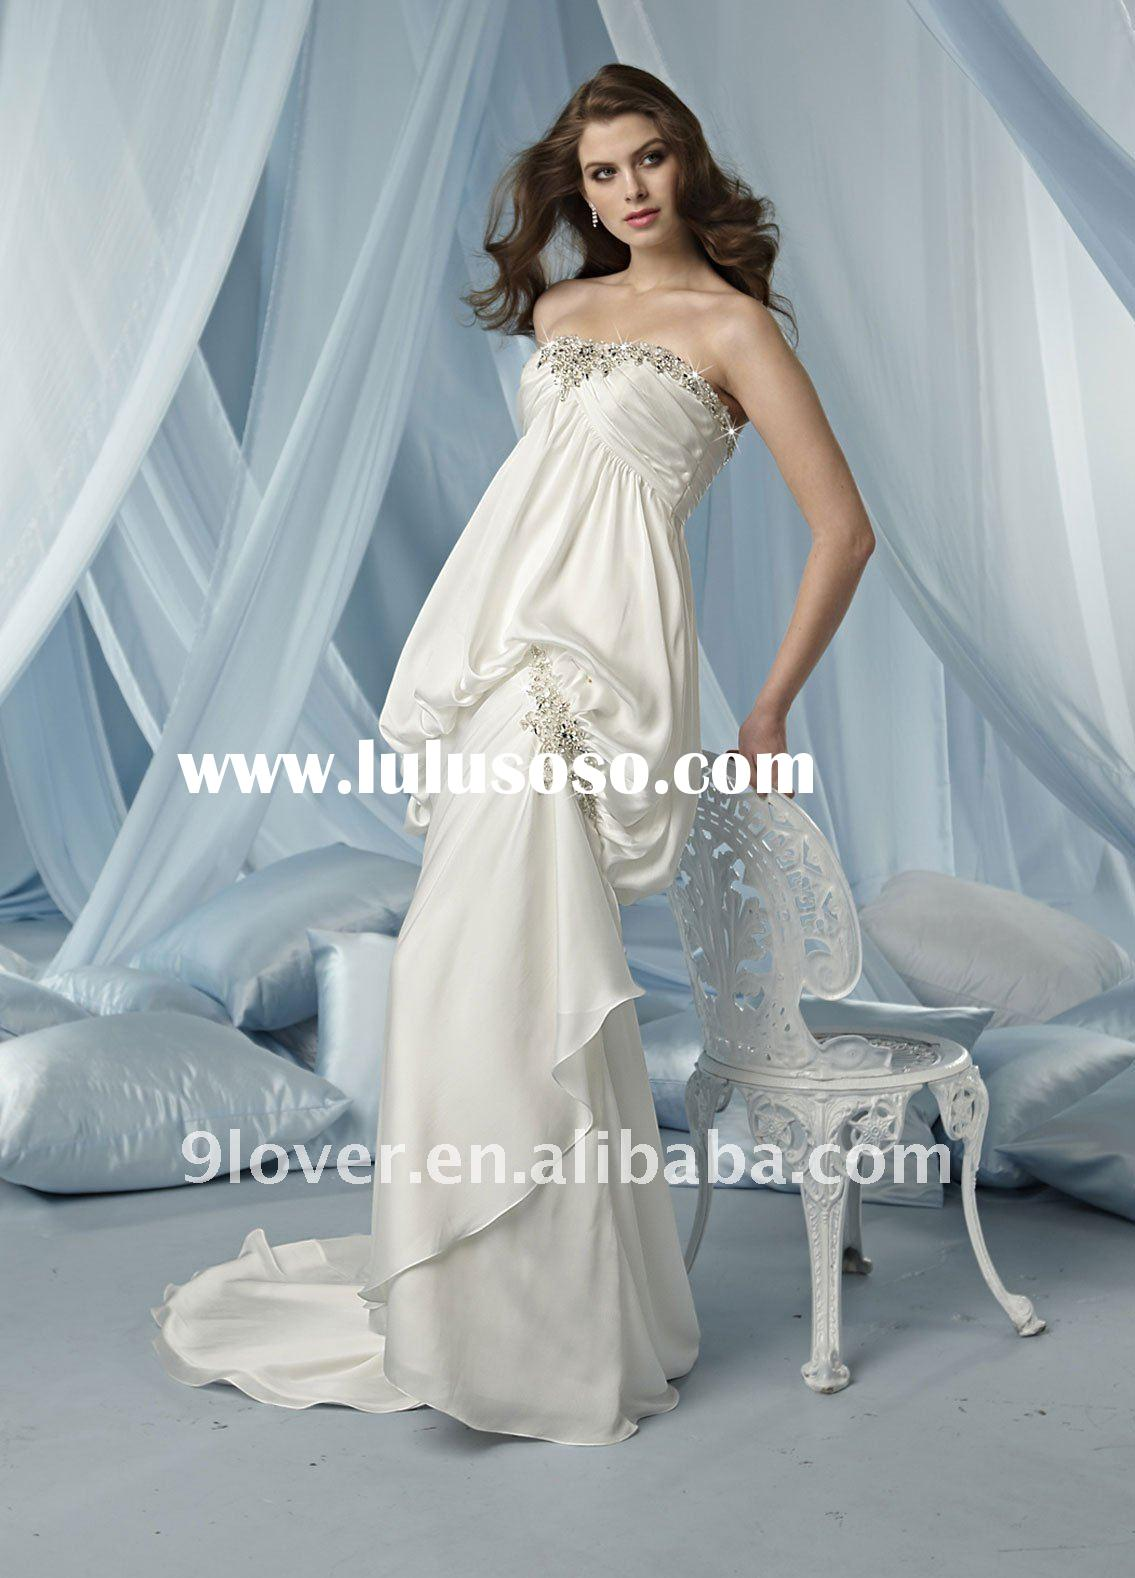 Satin Ball Gown with Pleated Bodice Pick Up Style 3091 wedding dress